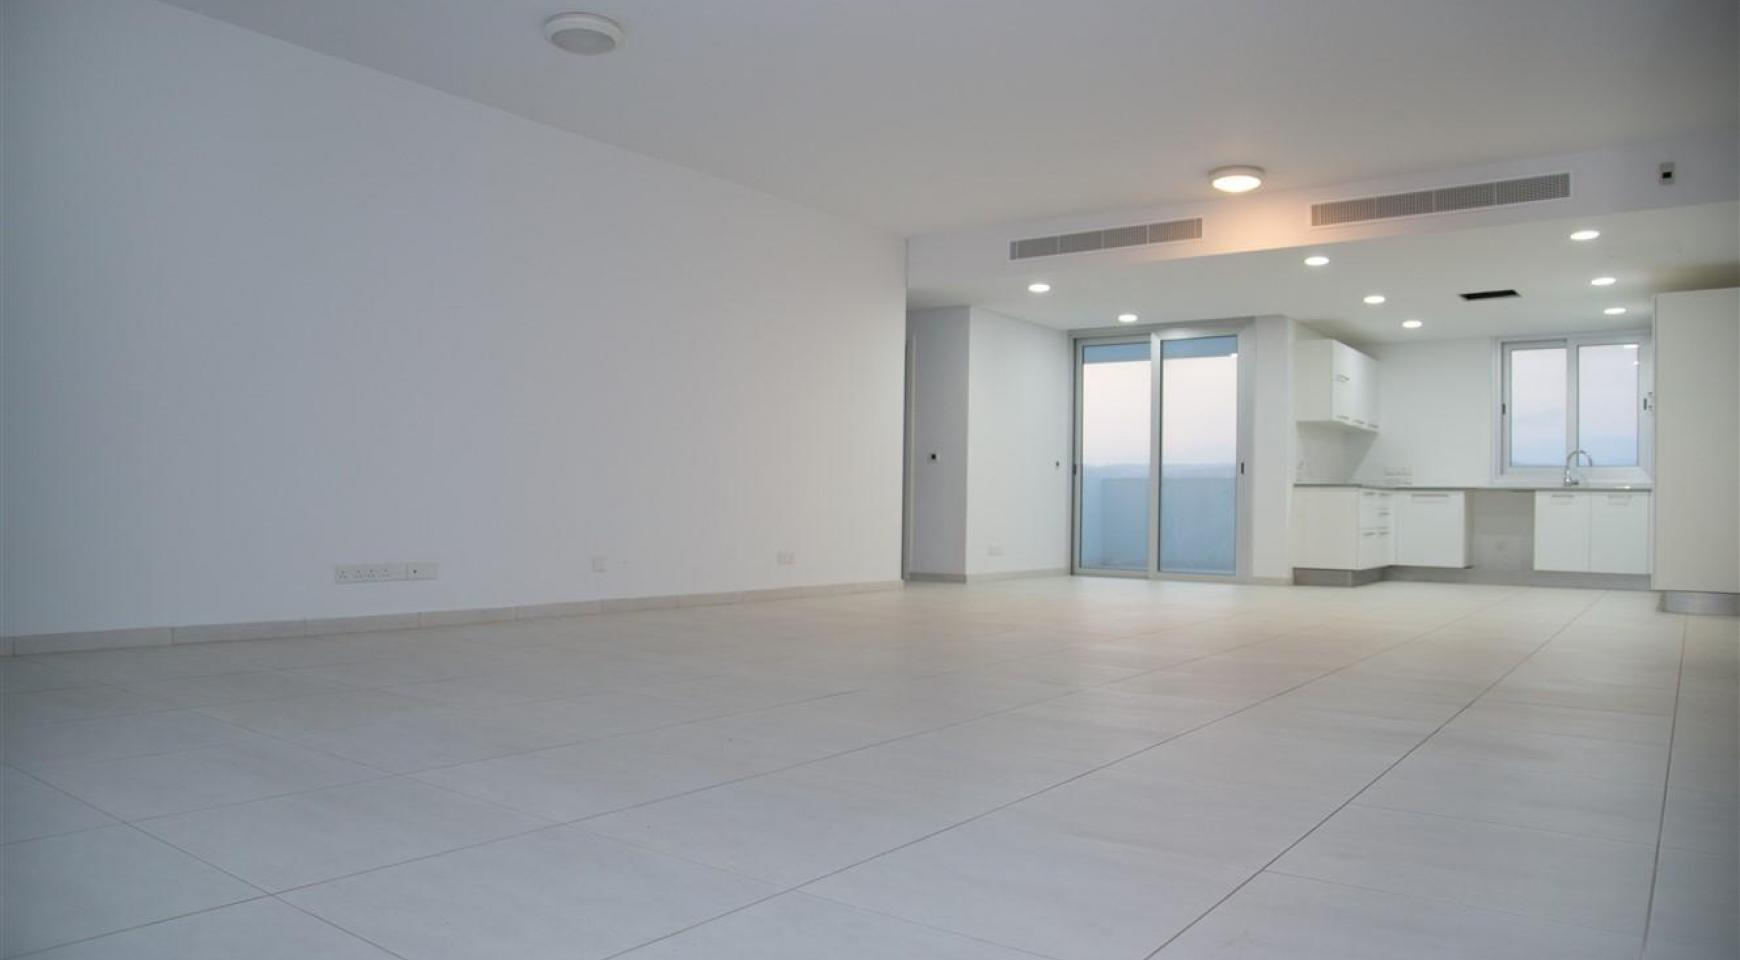 Elite 3 Bedroom Penthouse with Private Swimming Pool on the Roof - 20